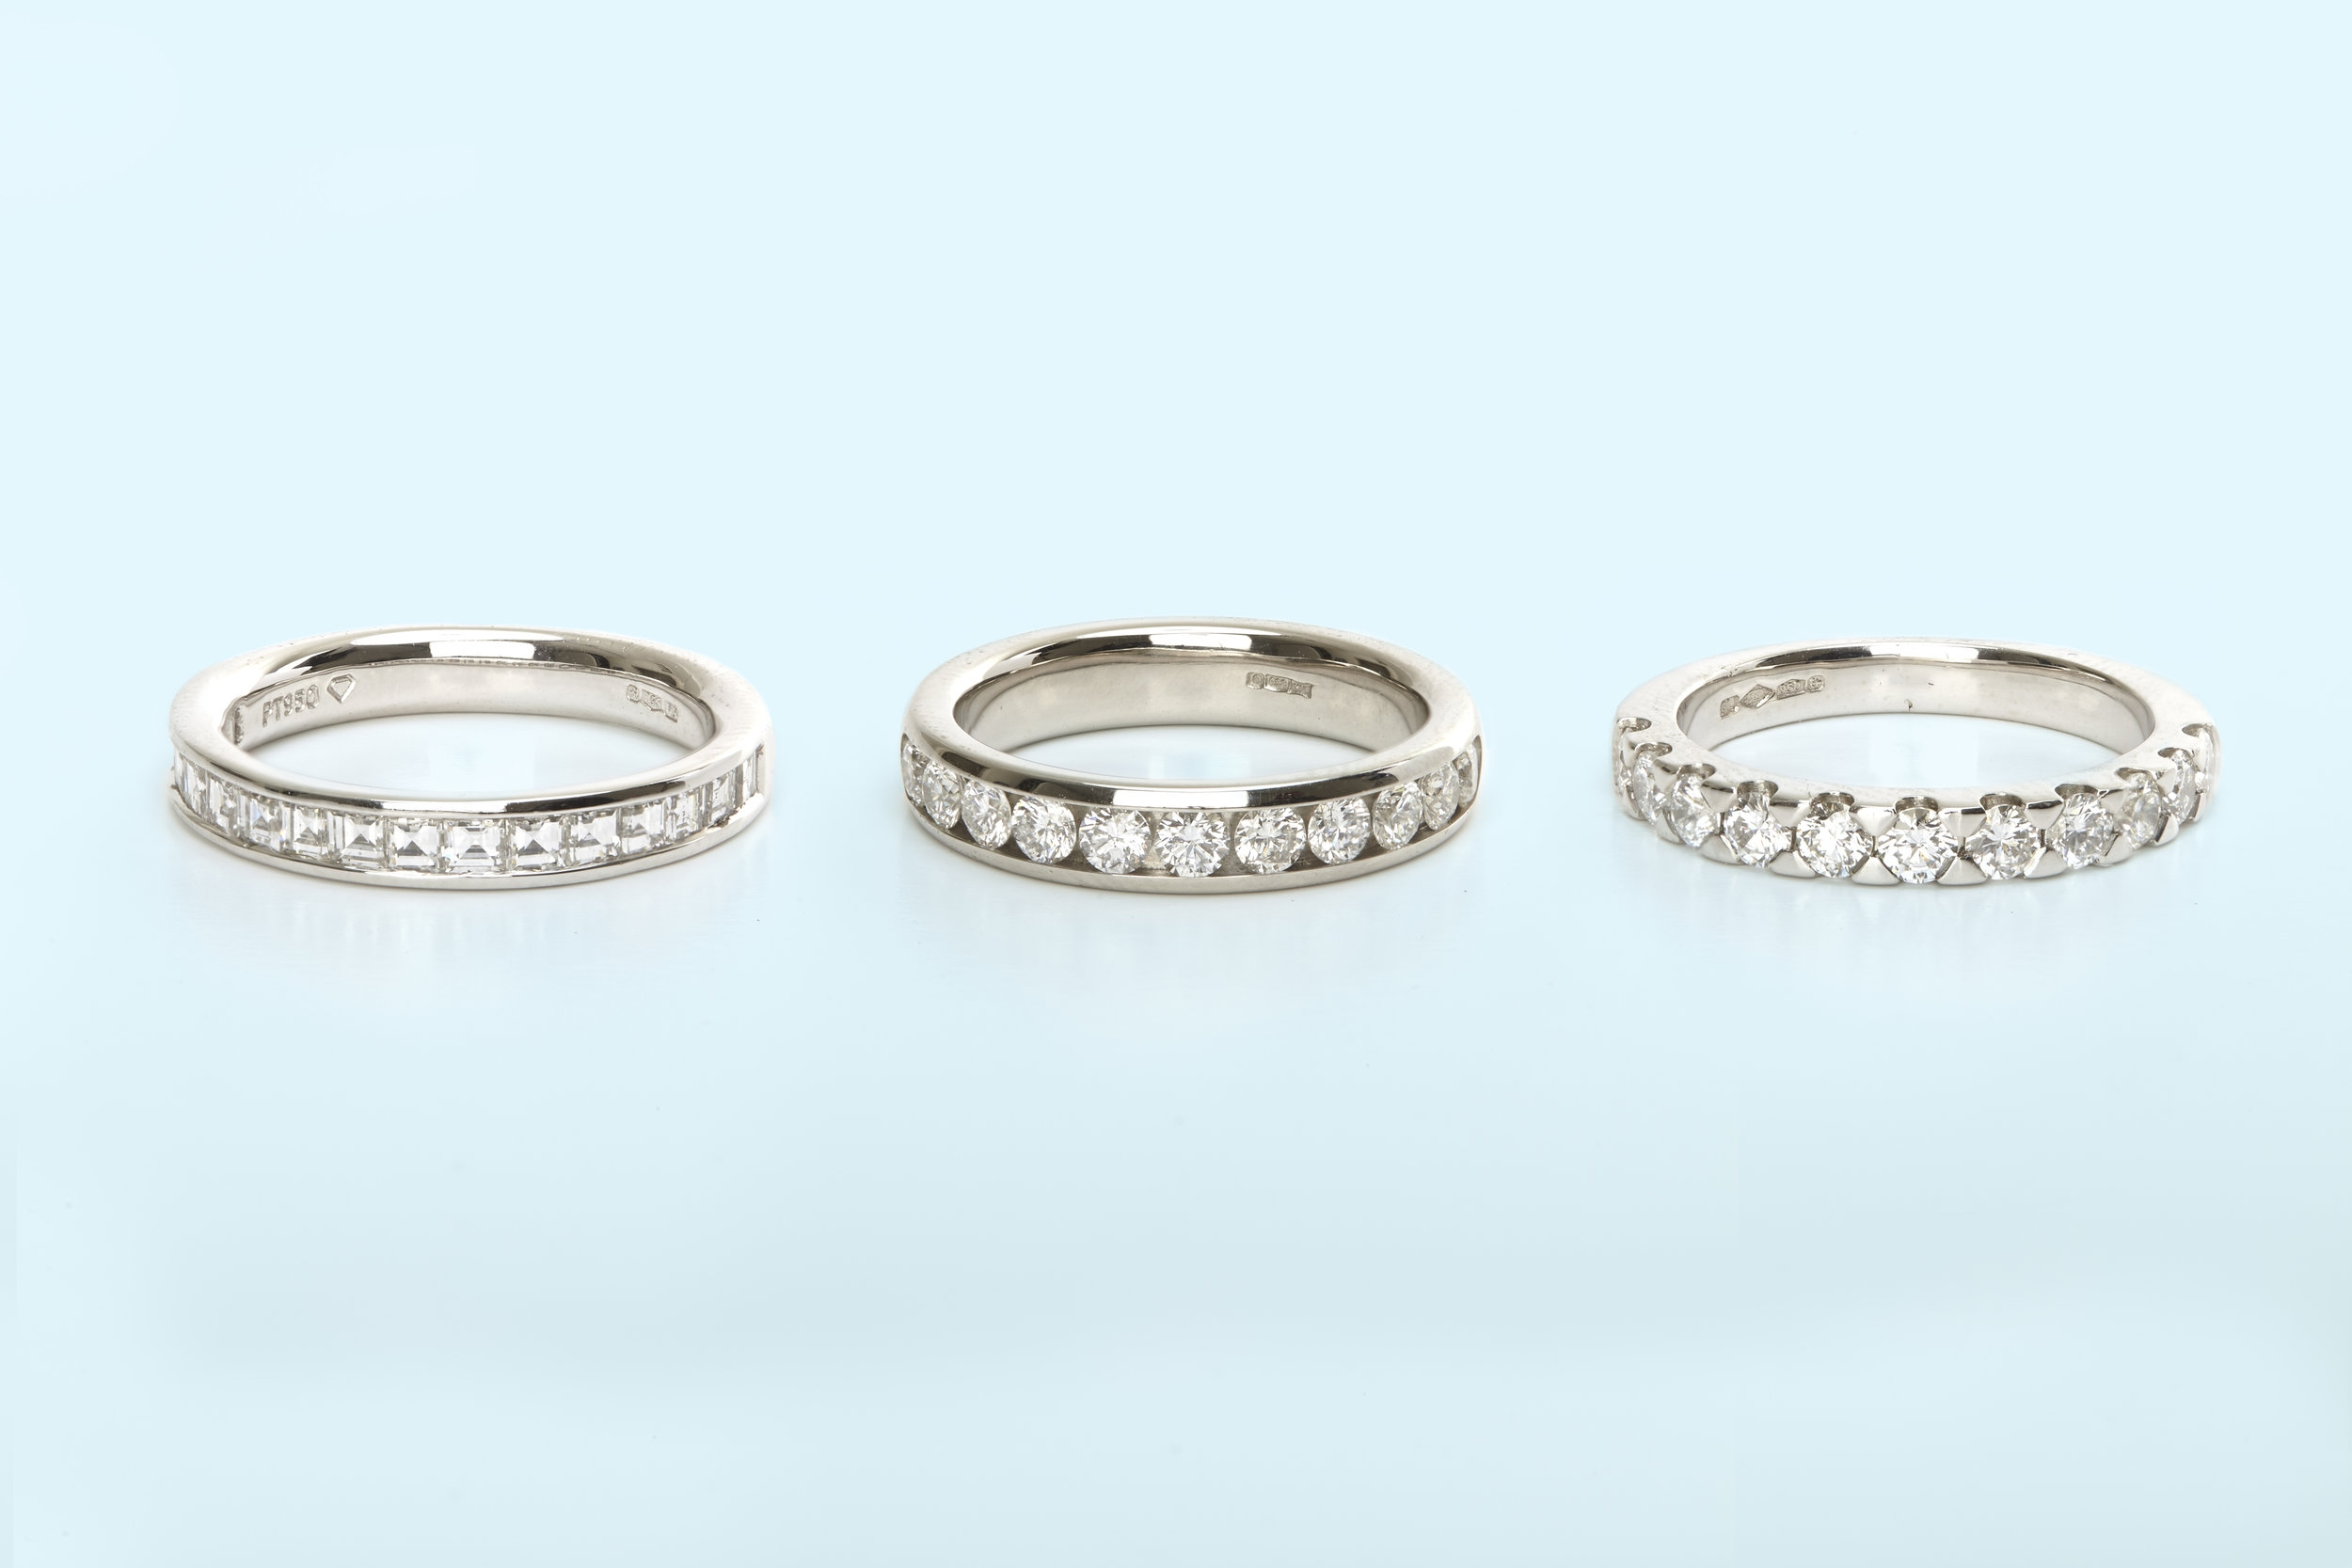 three white gold and diamond rings on pale blue background